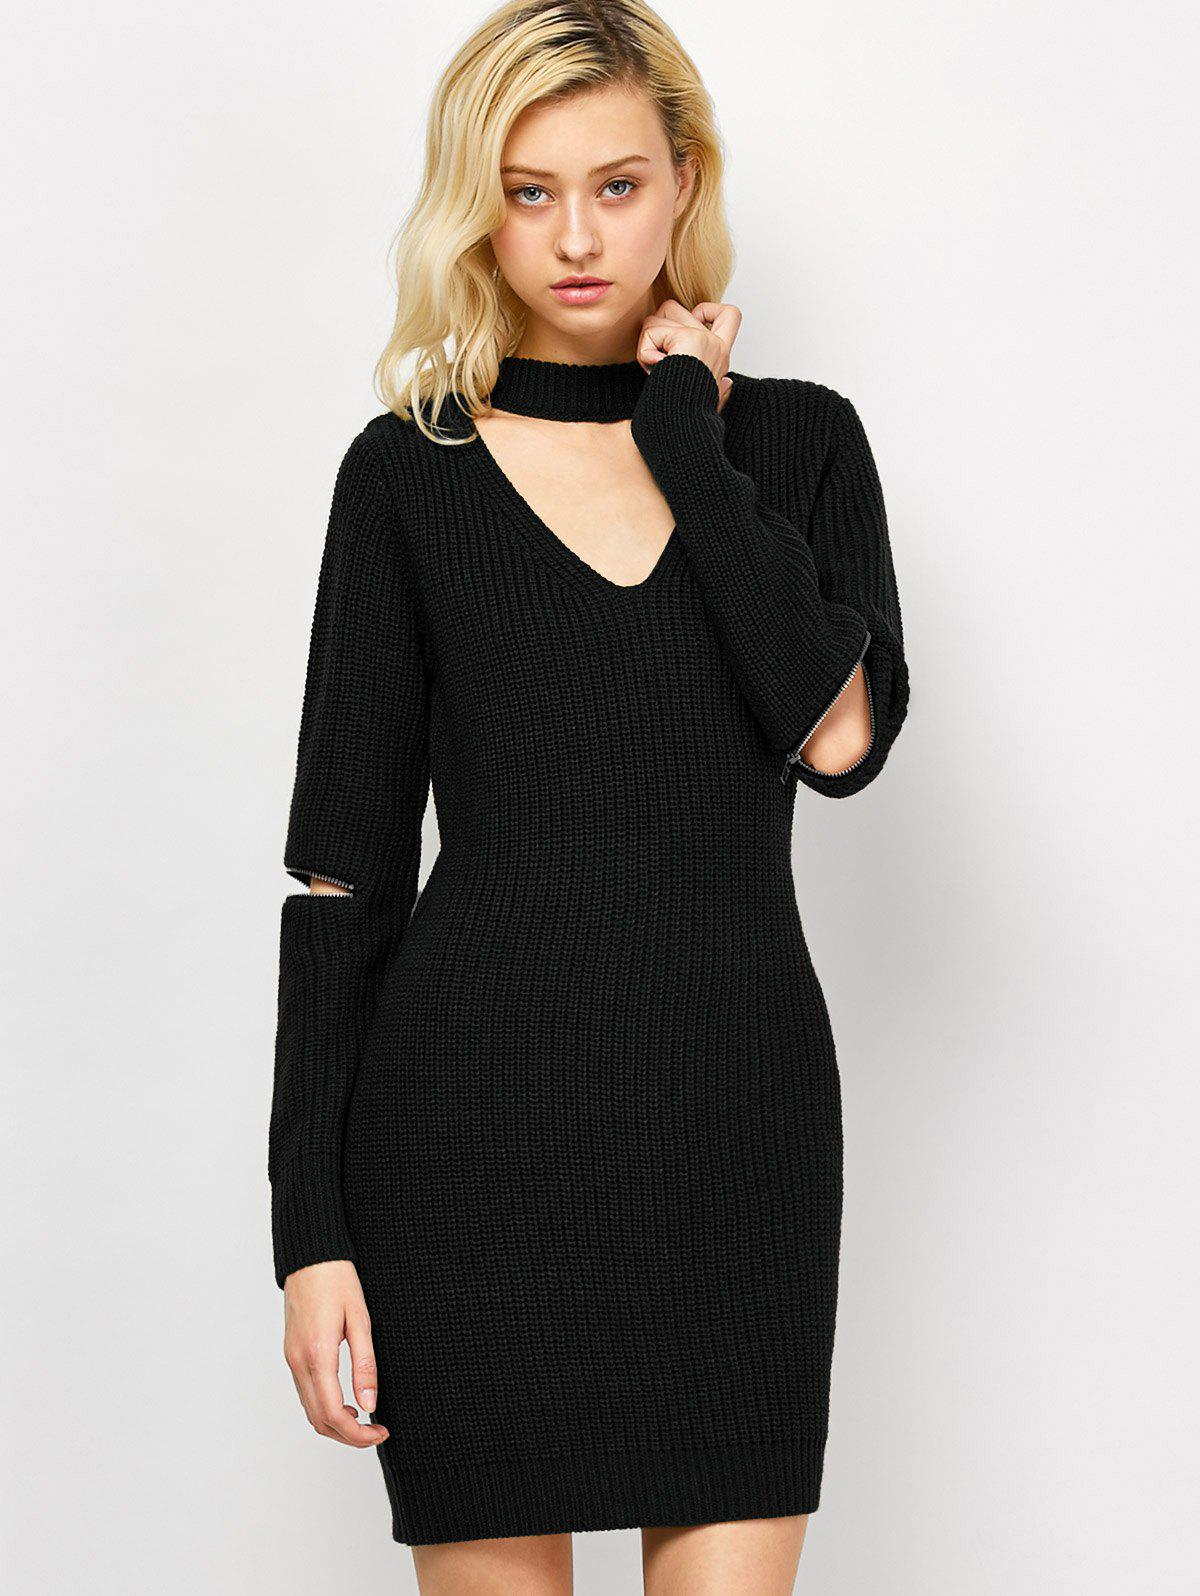 Choker Neck Short Sheath Fitted Sweater Dress - BLACK XL